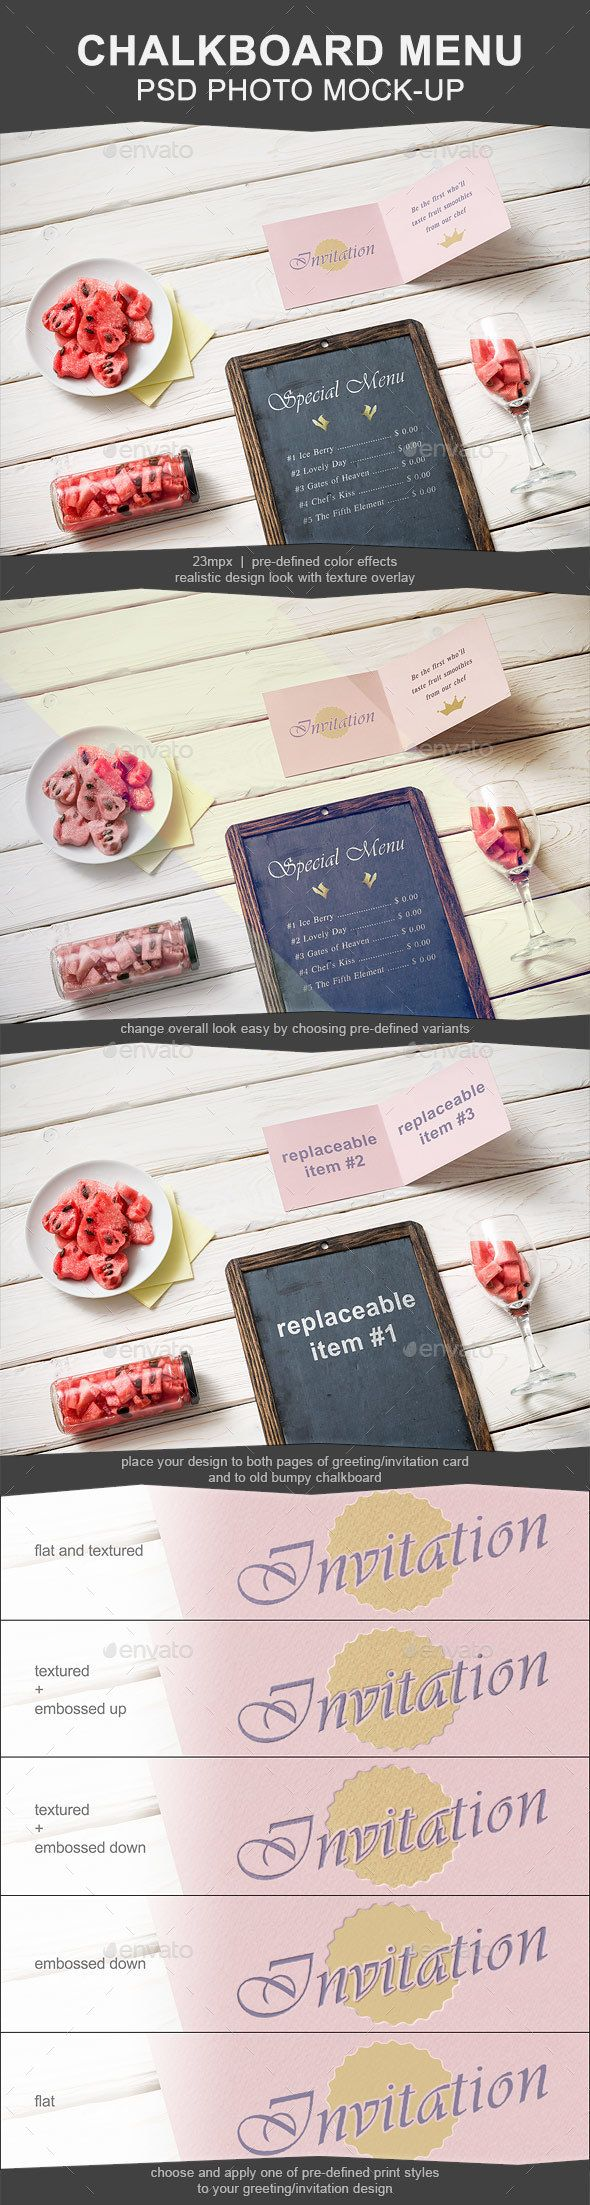 Chalkboard and greeting card mockup mock up chalkboards and mockup invitation cards chalkboards greeting card photoshop fonts menu stopboris Choice Image